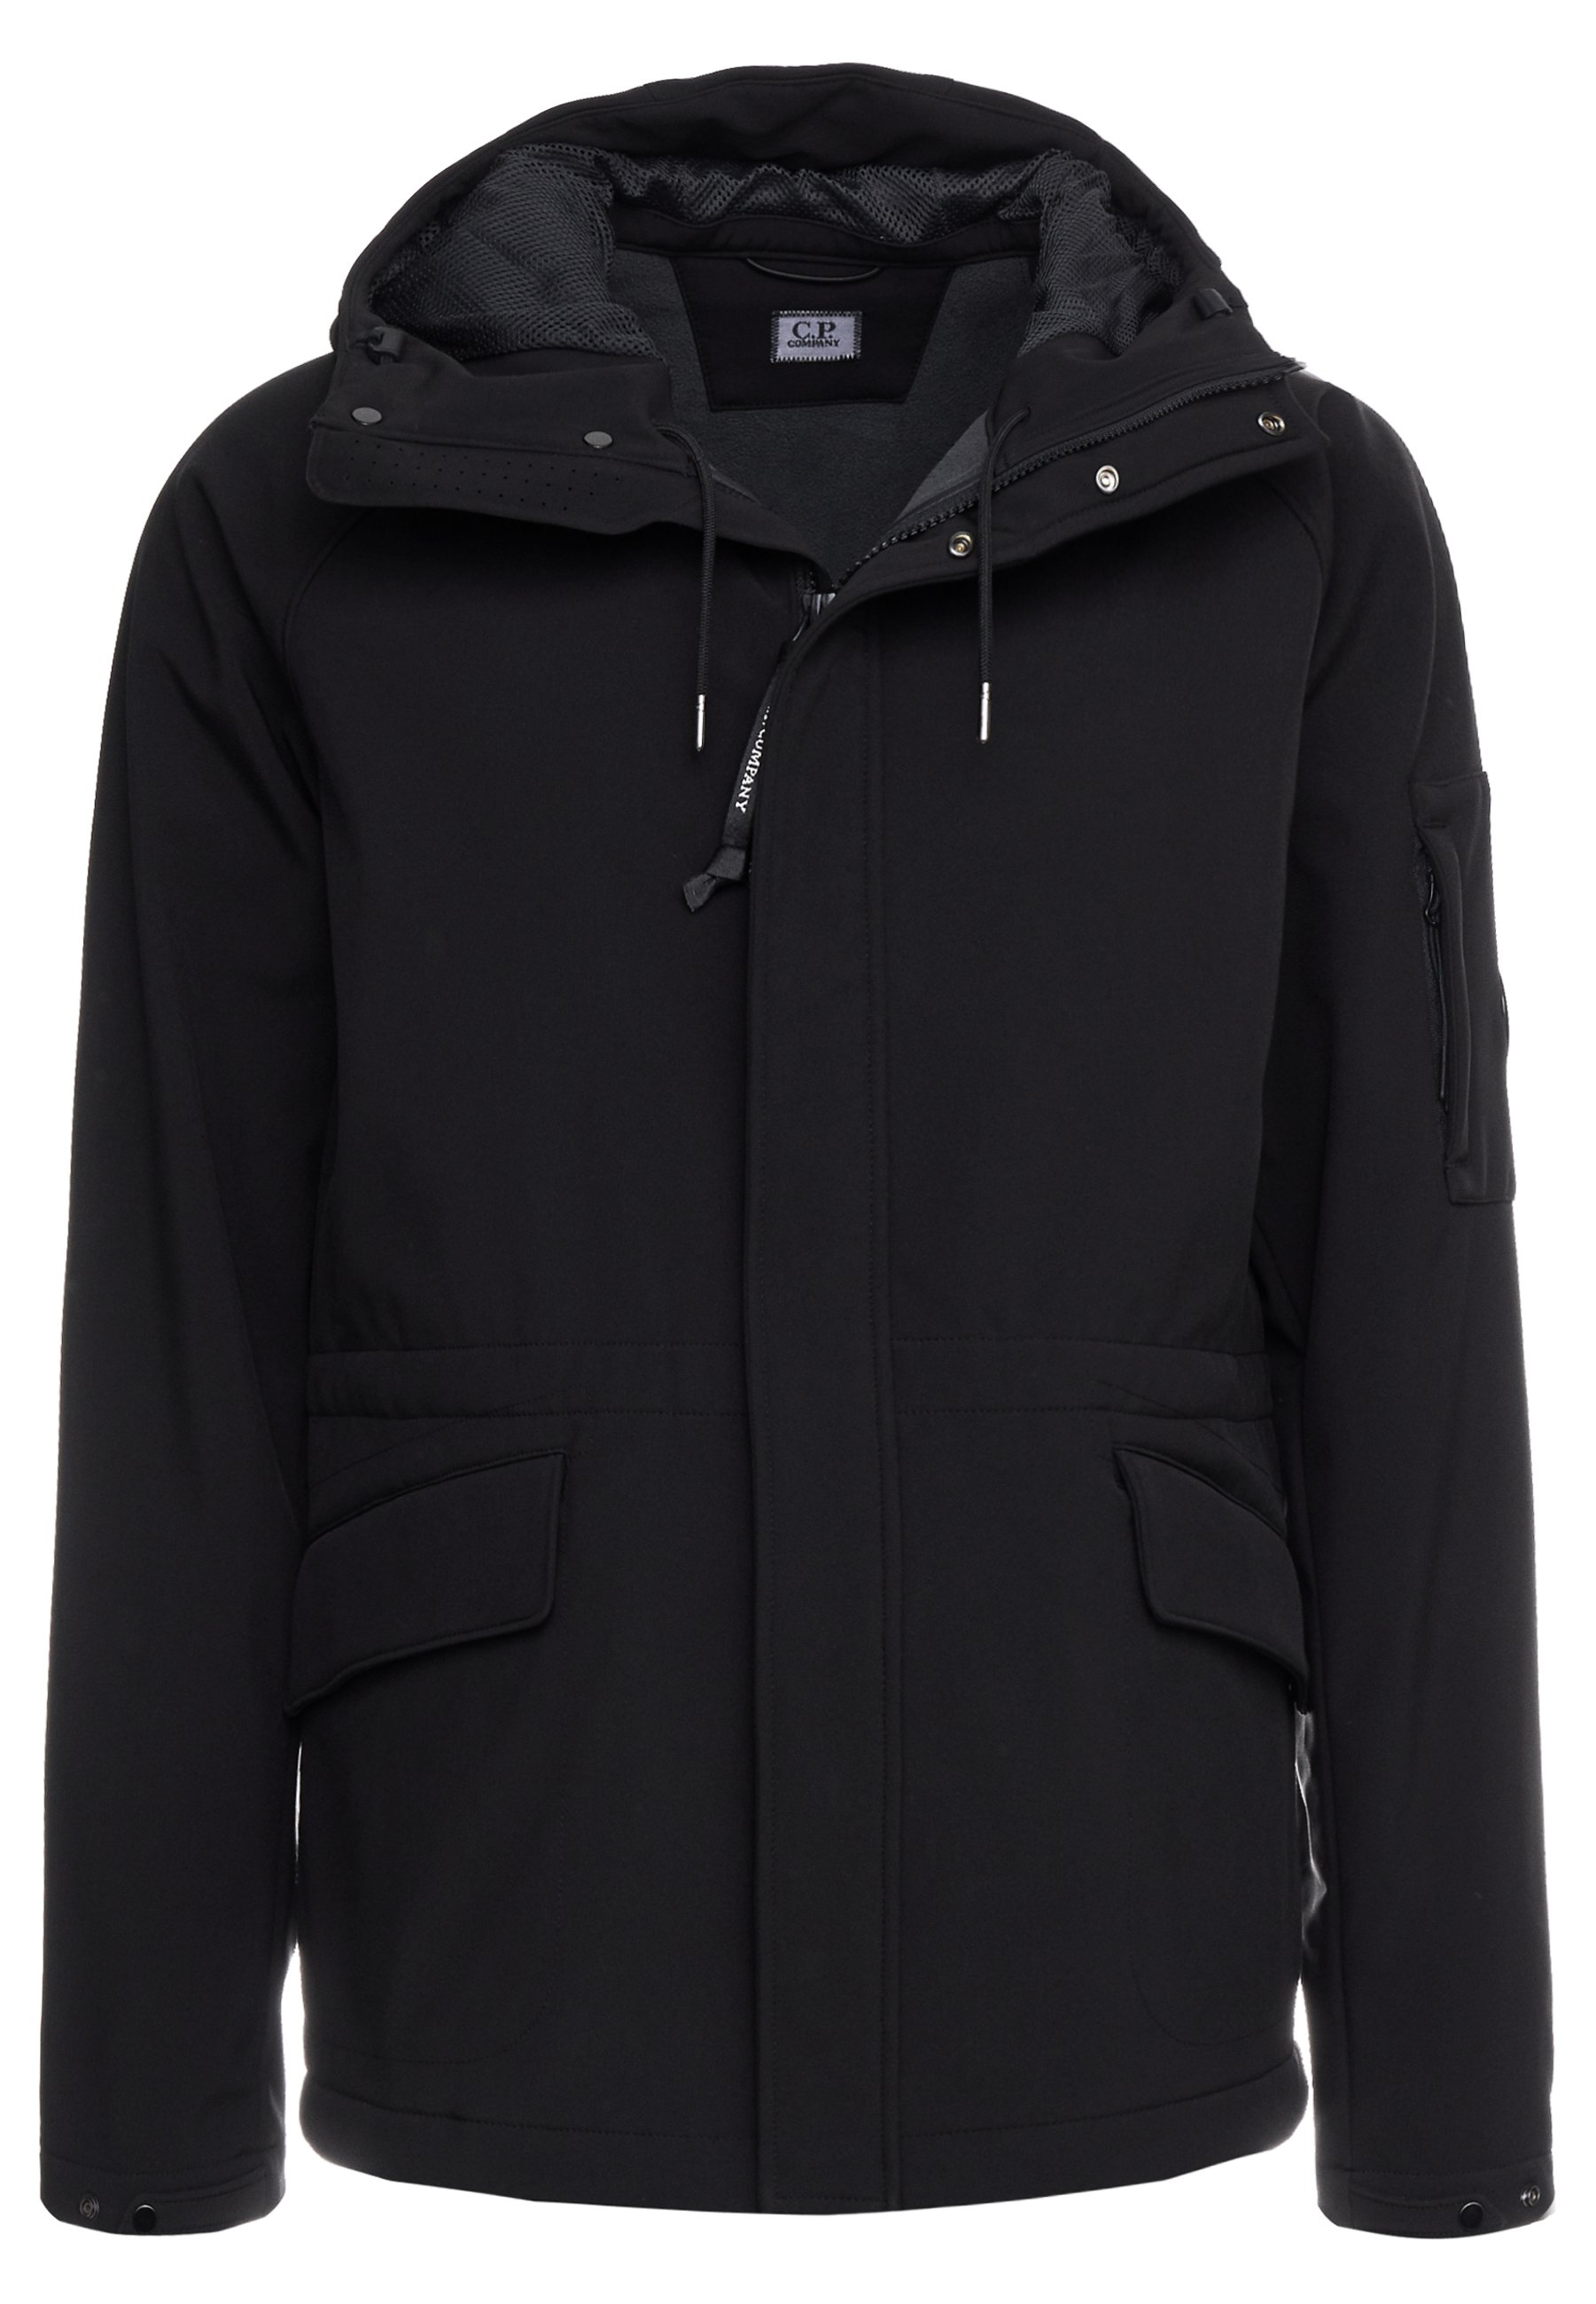 C.P. Company OUTERWEAR MEDIUM JACKET Lett jakke black